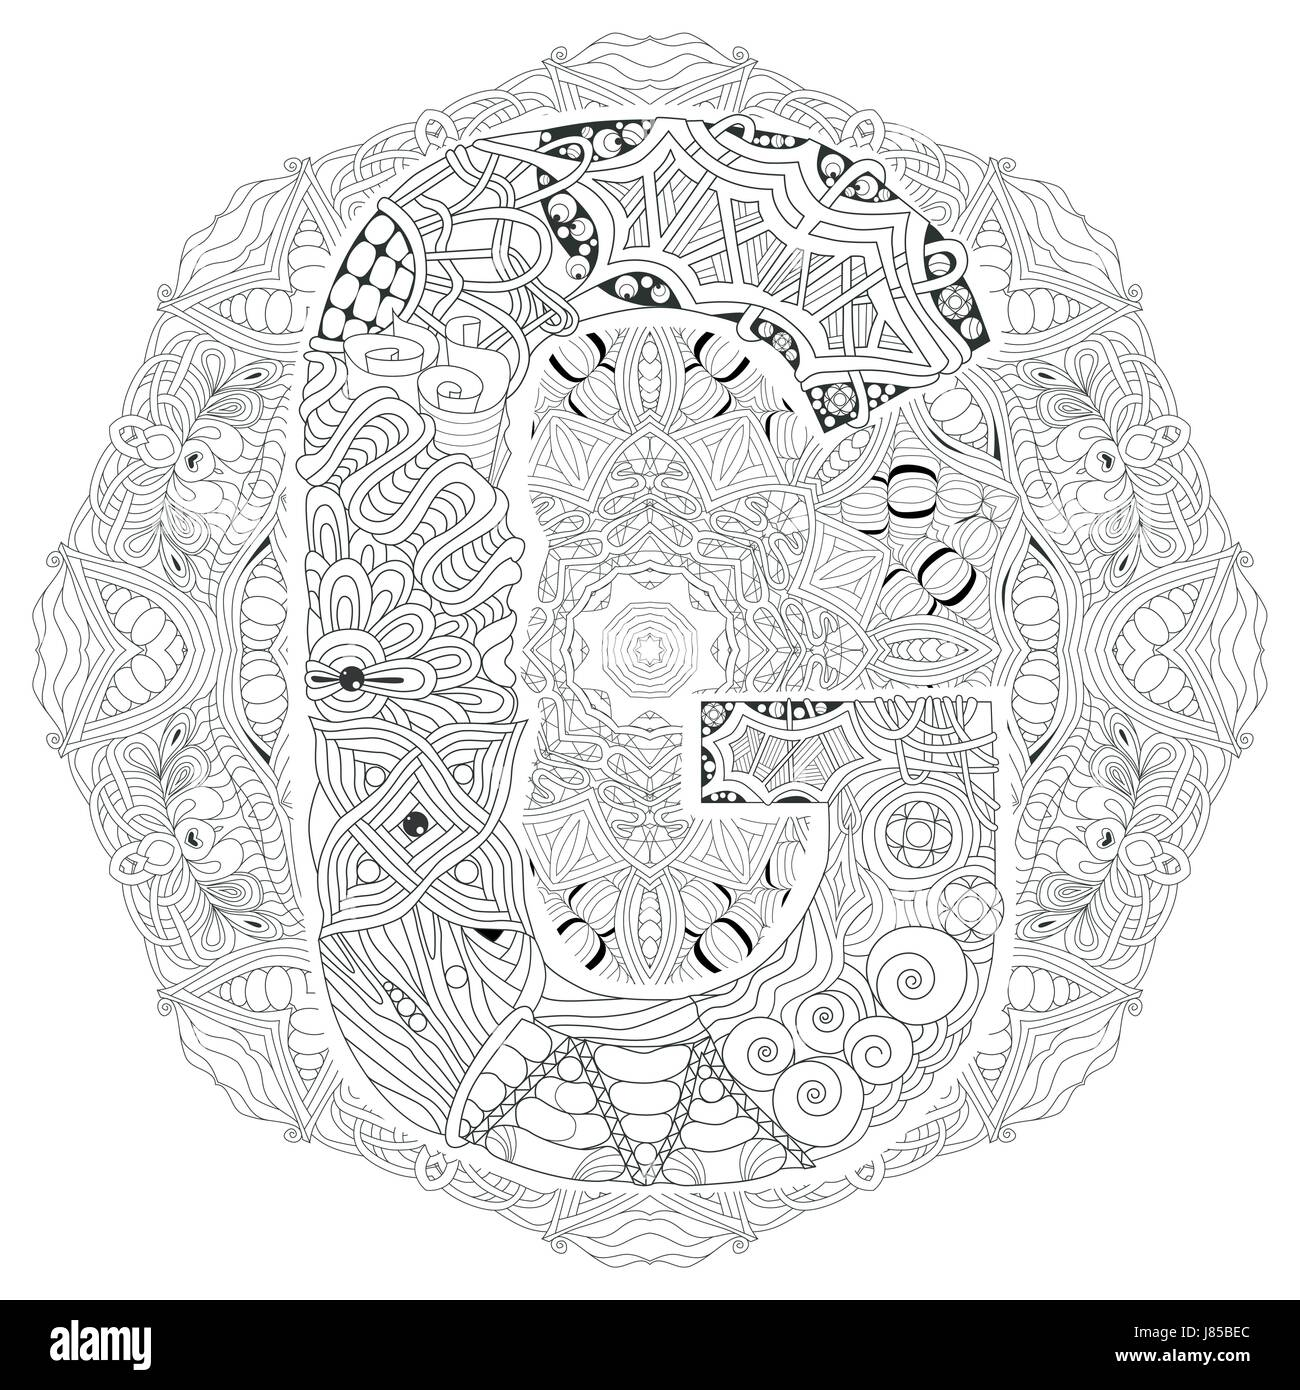 Hand Painted Art Design Adult Anti Stress Coloring Page Black And